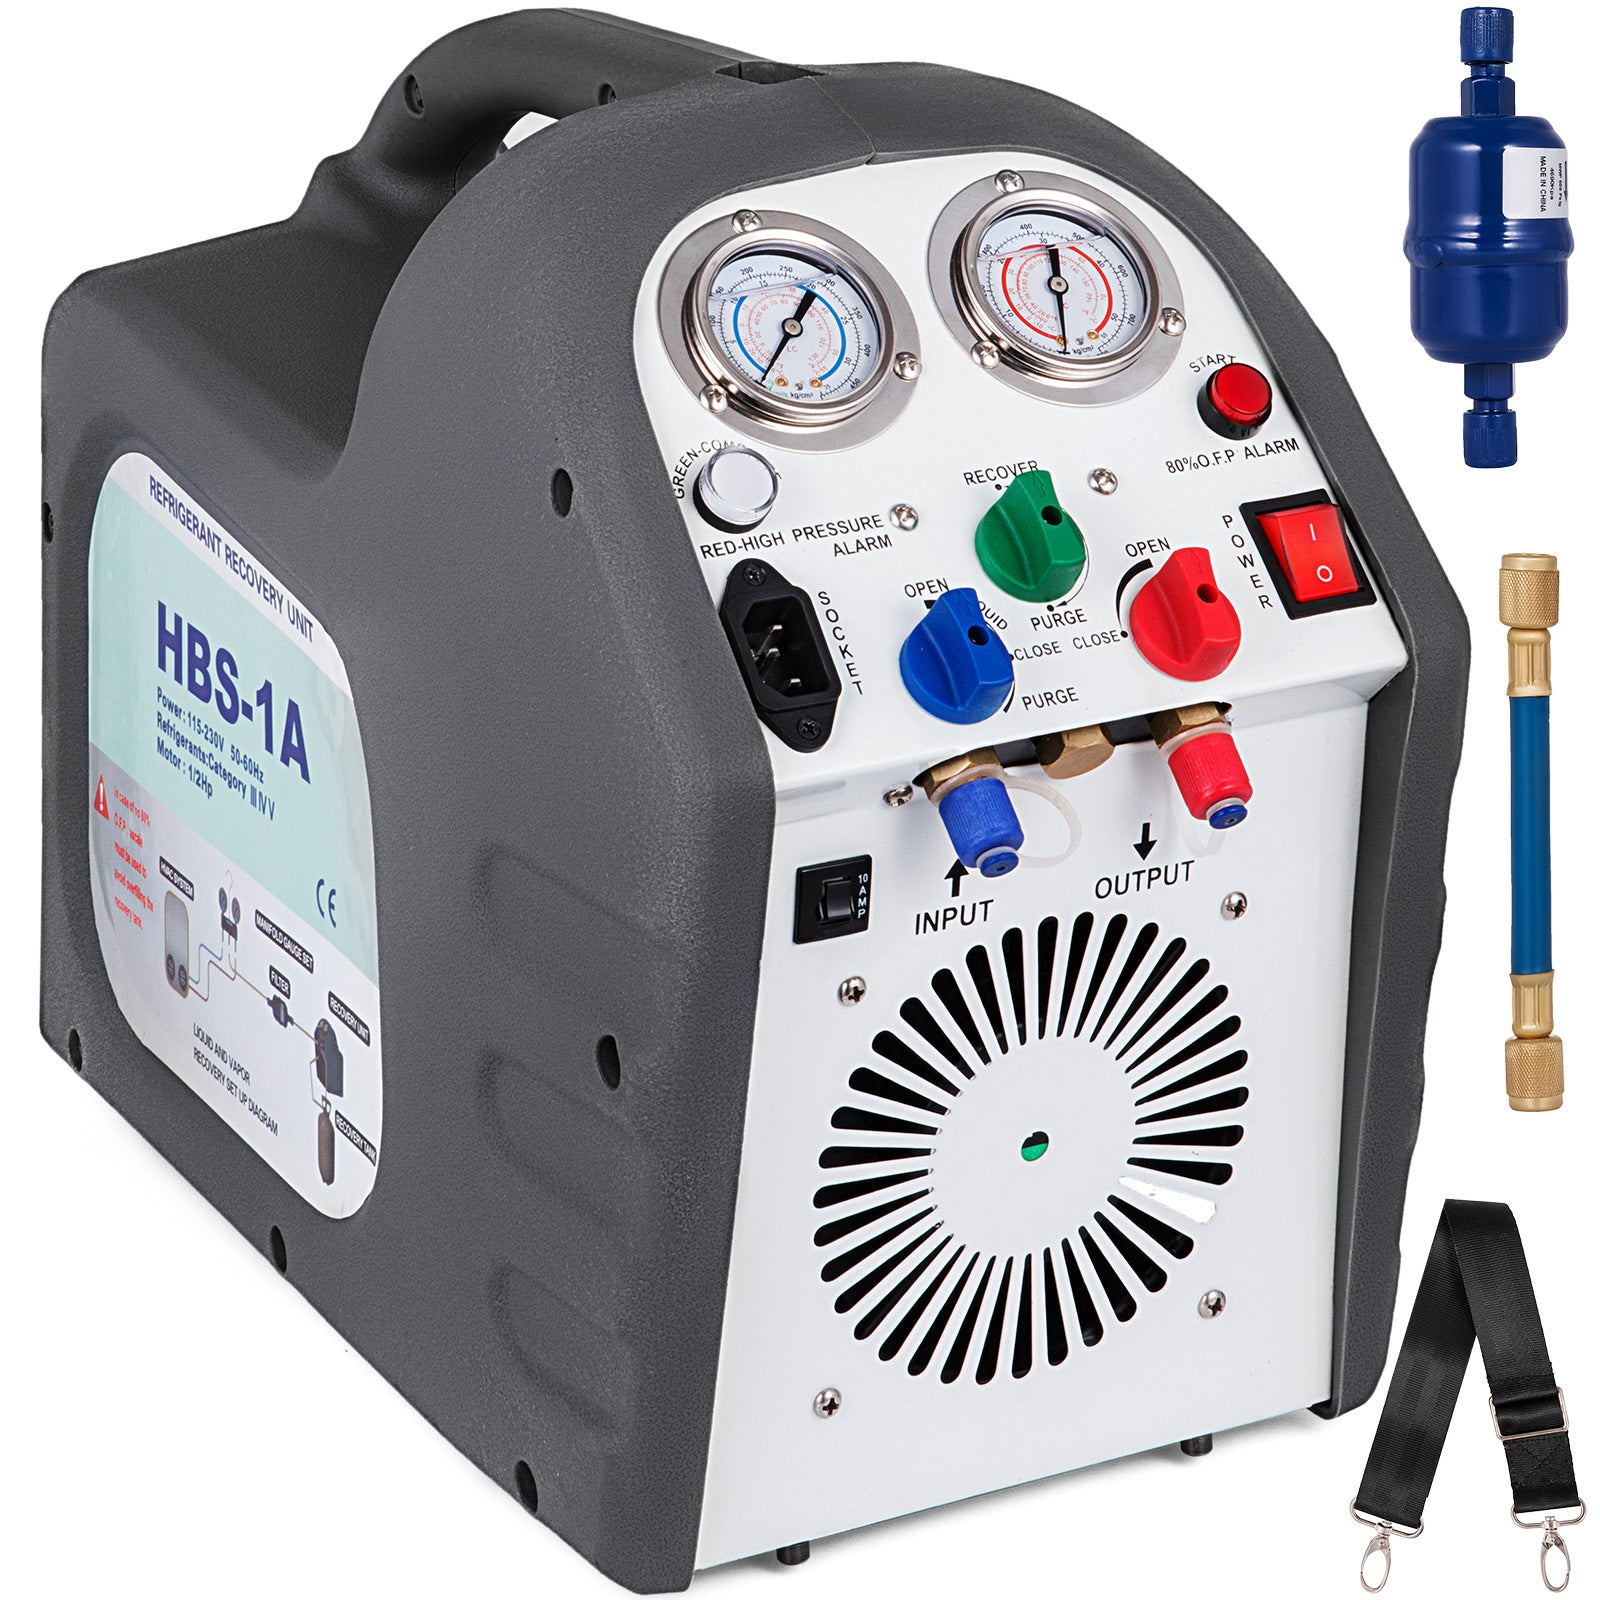 Refrigerant Recovery Machine Hvac R410a Rg6 For Both Liquid & Vapor Refrigerant